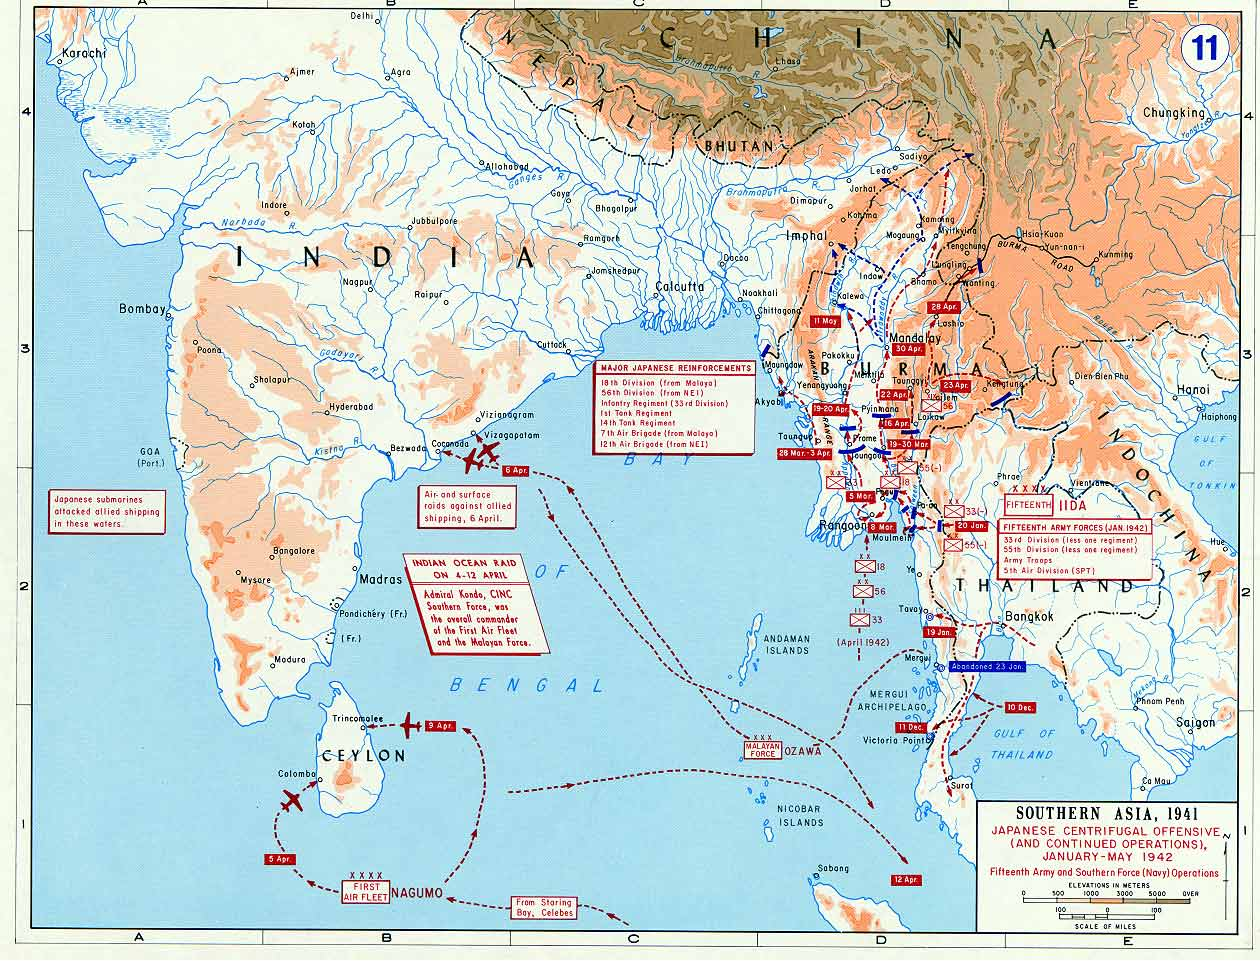 Japanese Offensive in Southern Asia